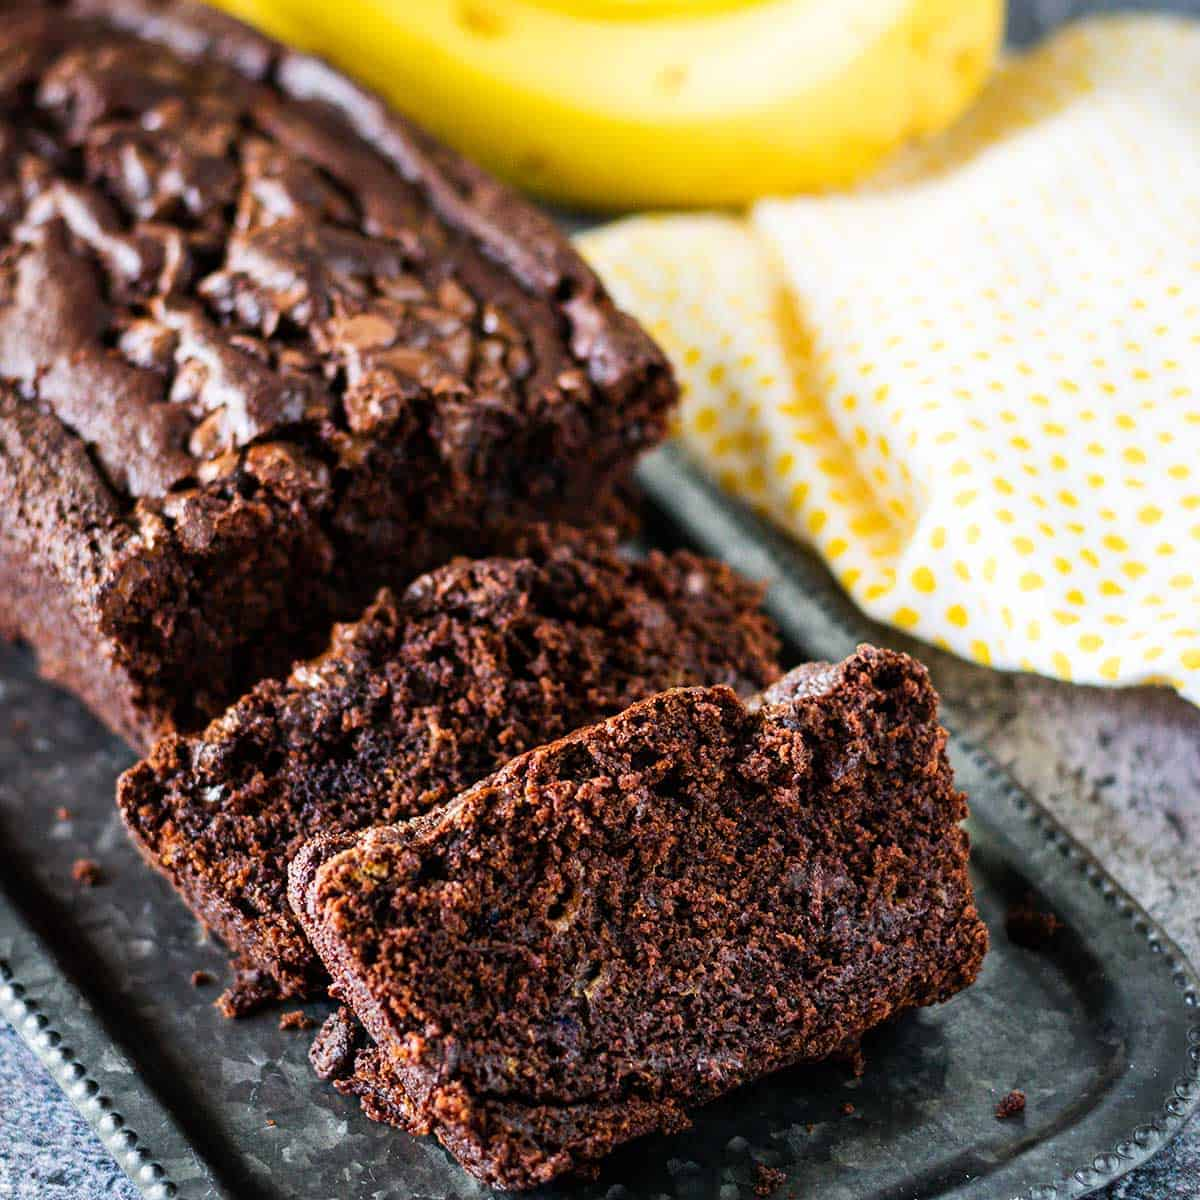 Slices of chocolate banana bread on a tray with yellow dotted napkin in background.